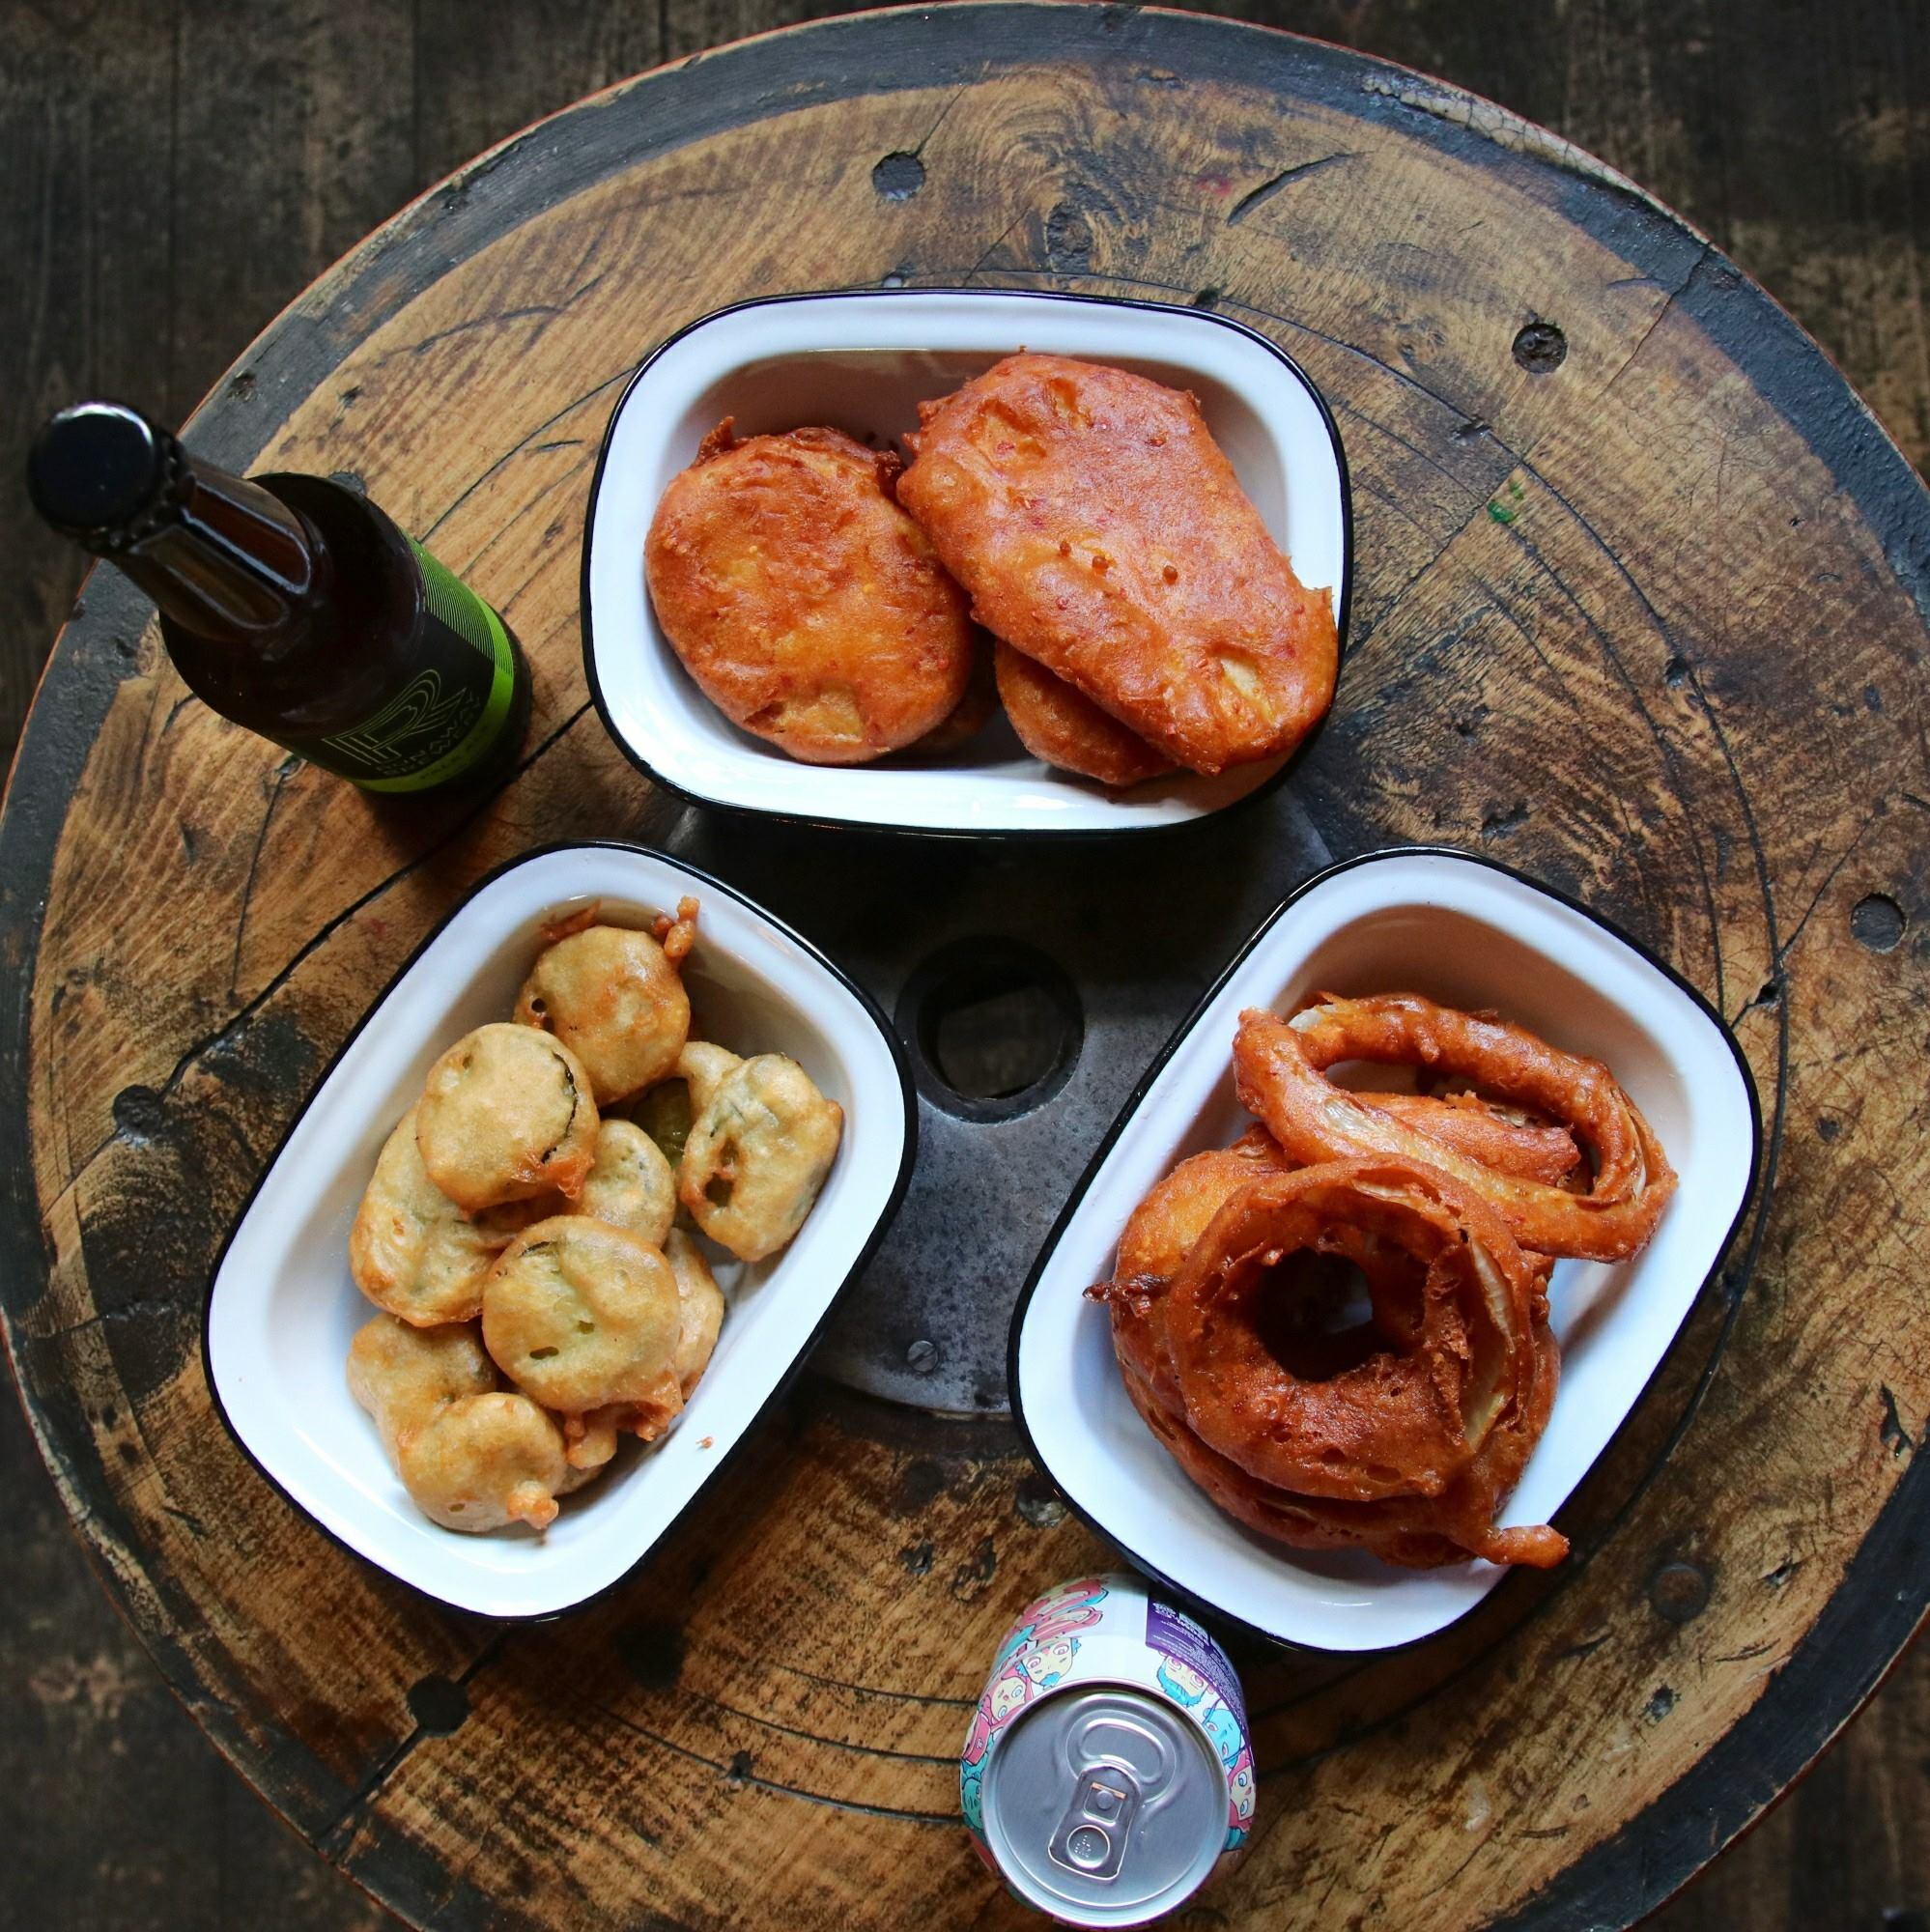 Battered squid rings from Hip Hop Chip Shop, the maverick fish and chip restaurant in Ancoats